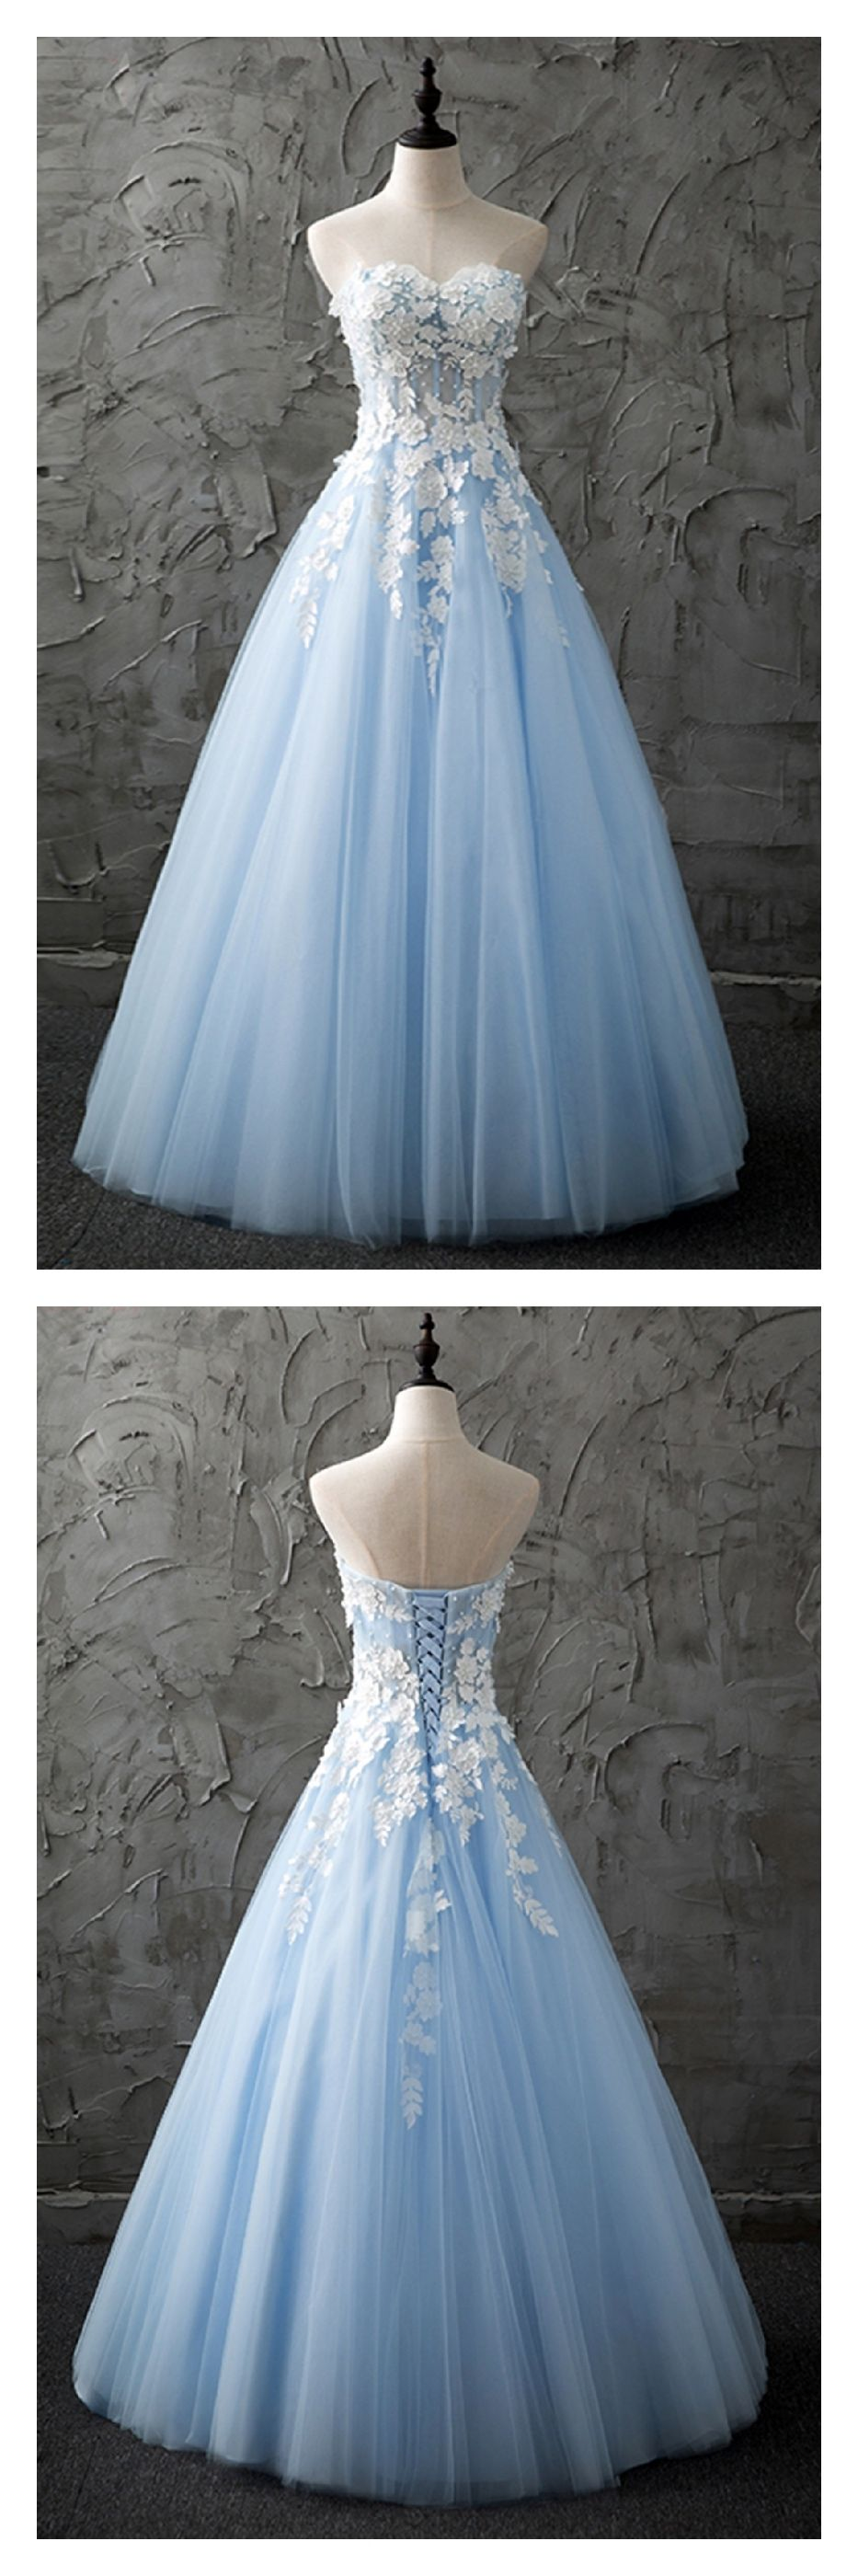 Sweetheart sky blue long tulle prom dresses with appliqueed